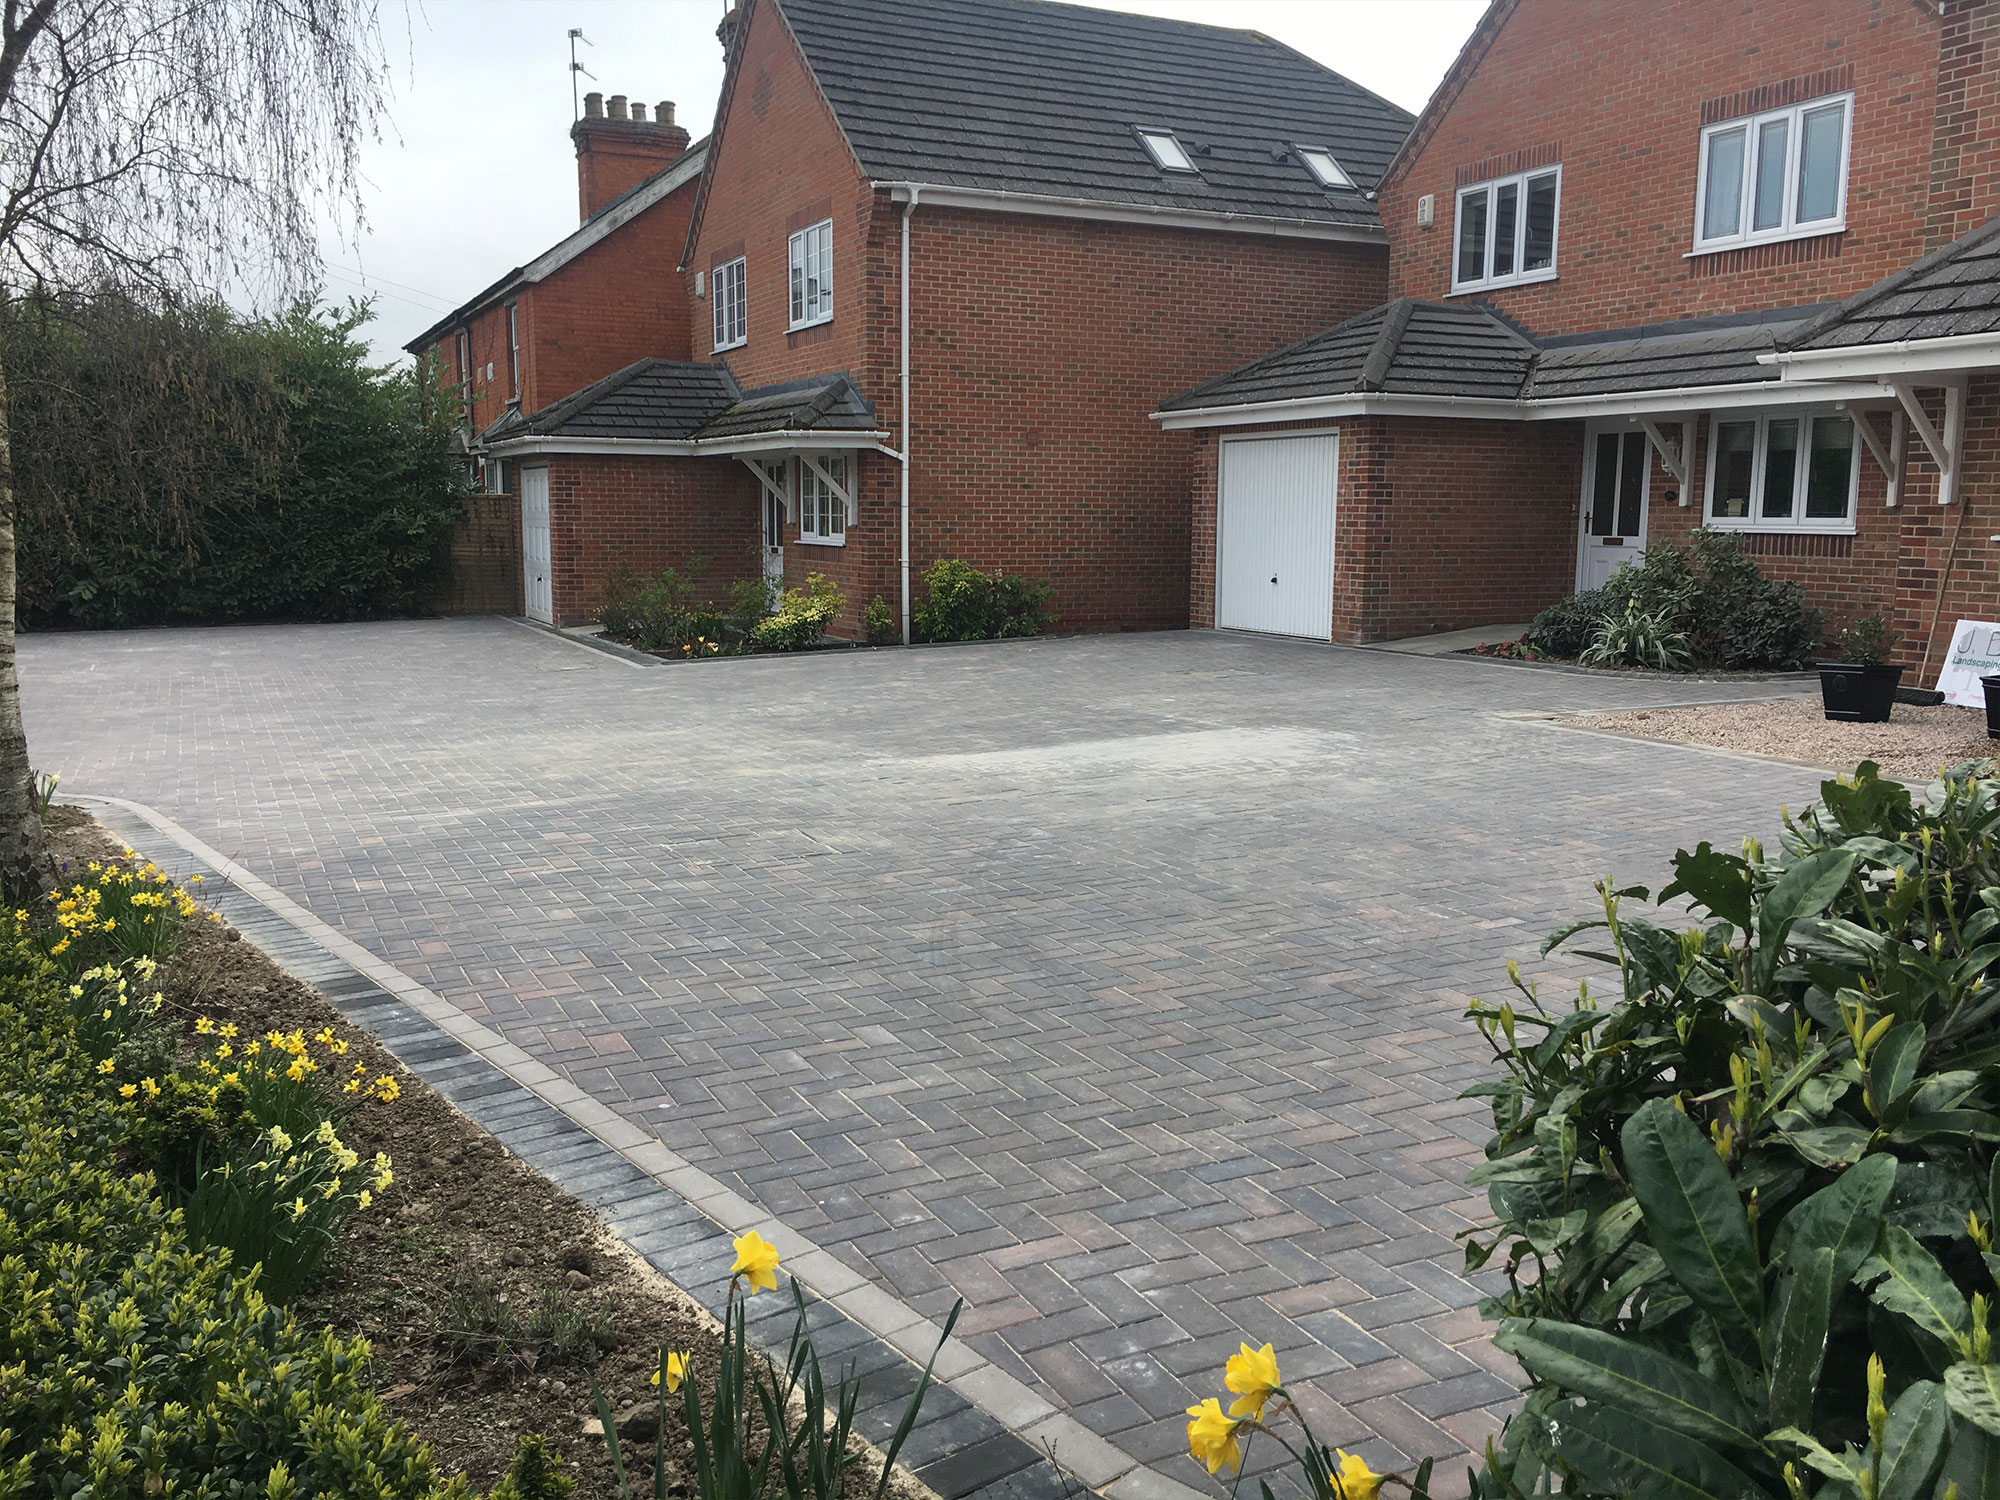 Landscaping - Driveways